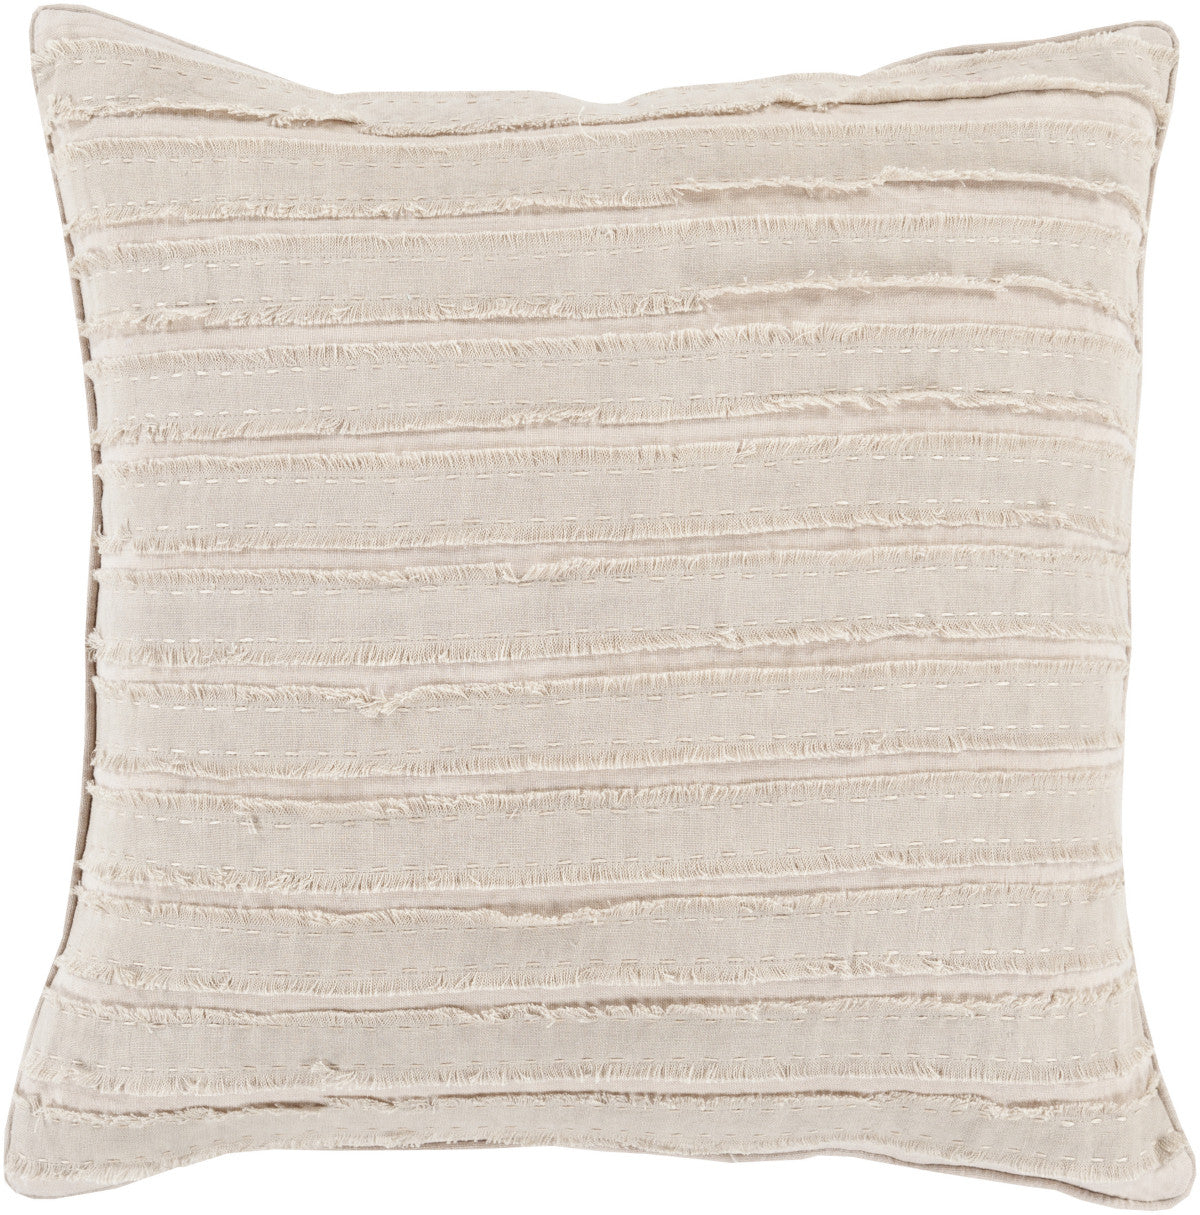 Surya Willow Charm and Comfort WO-005 Pillow